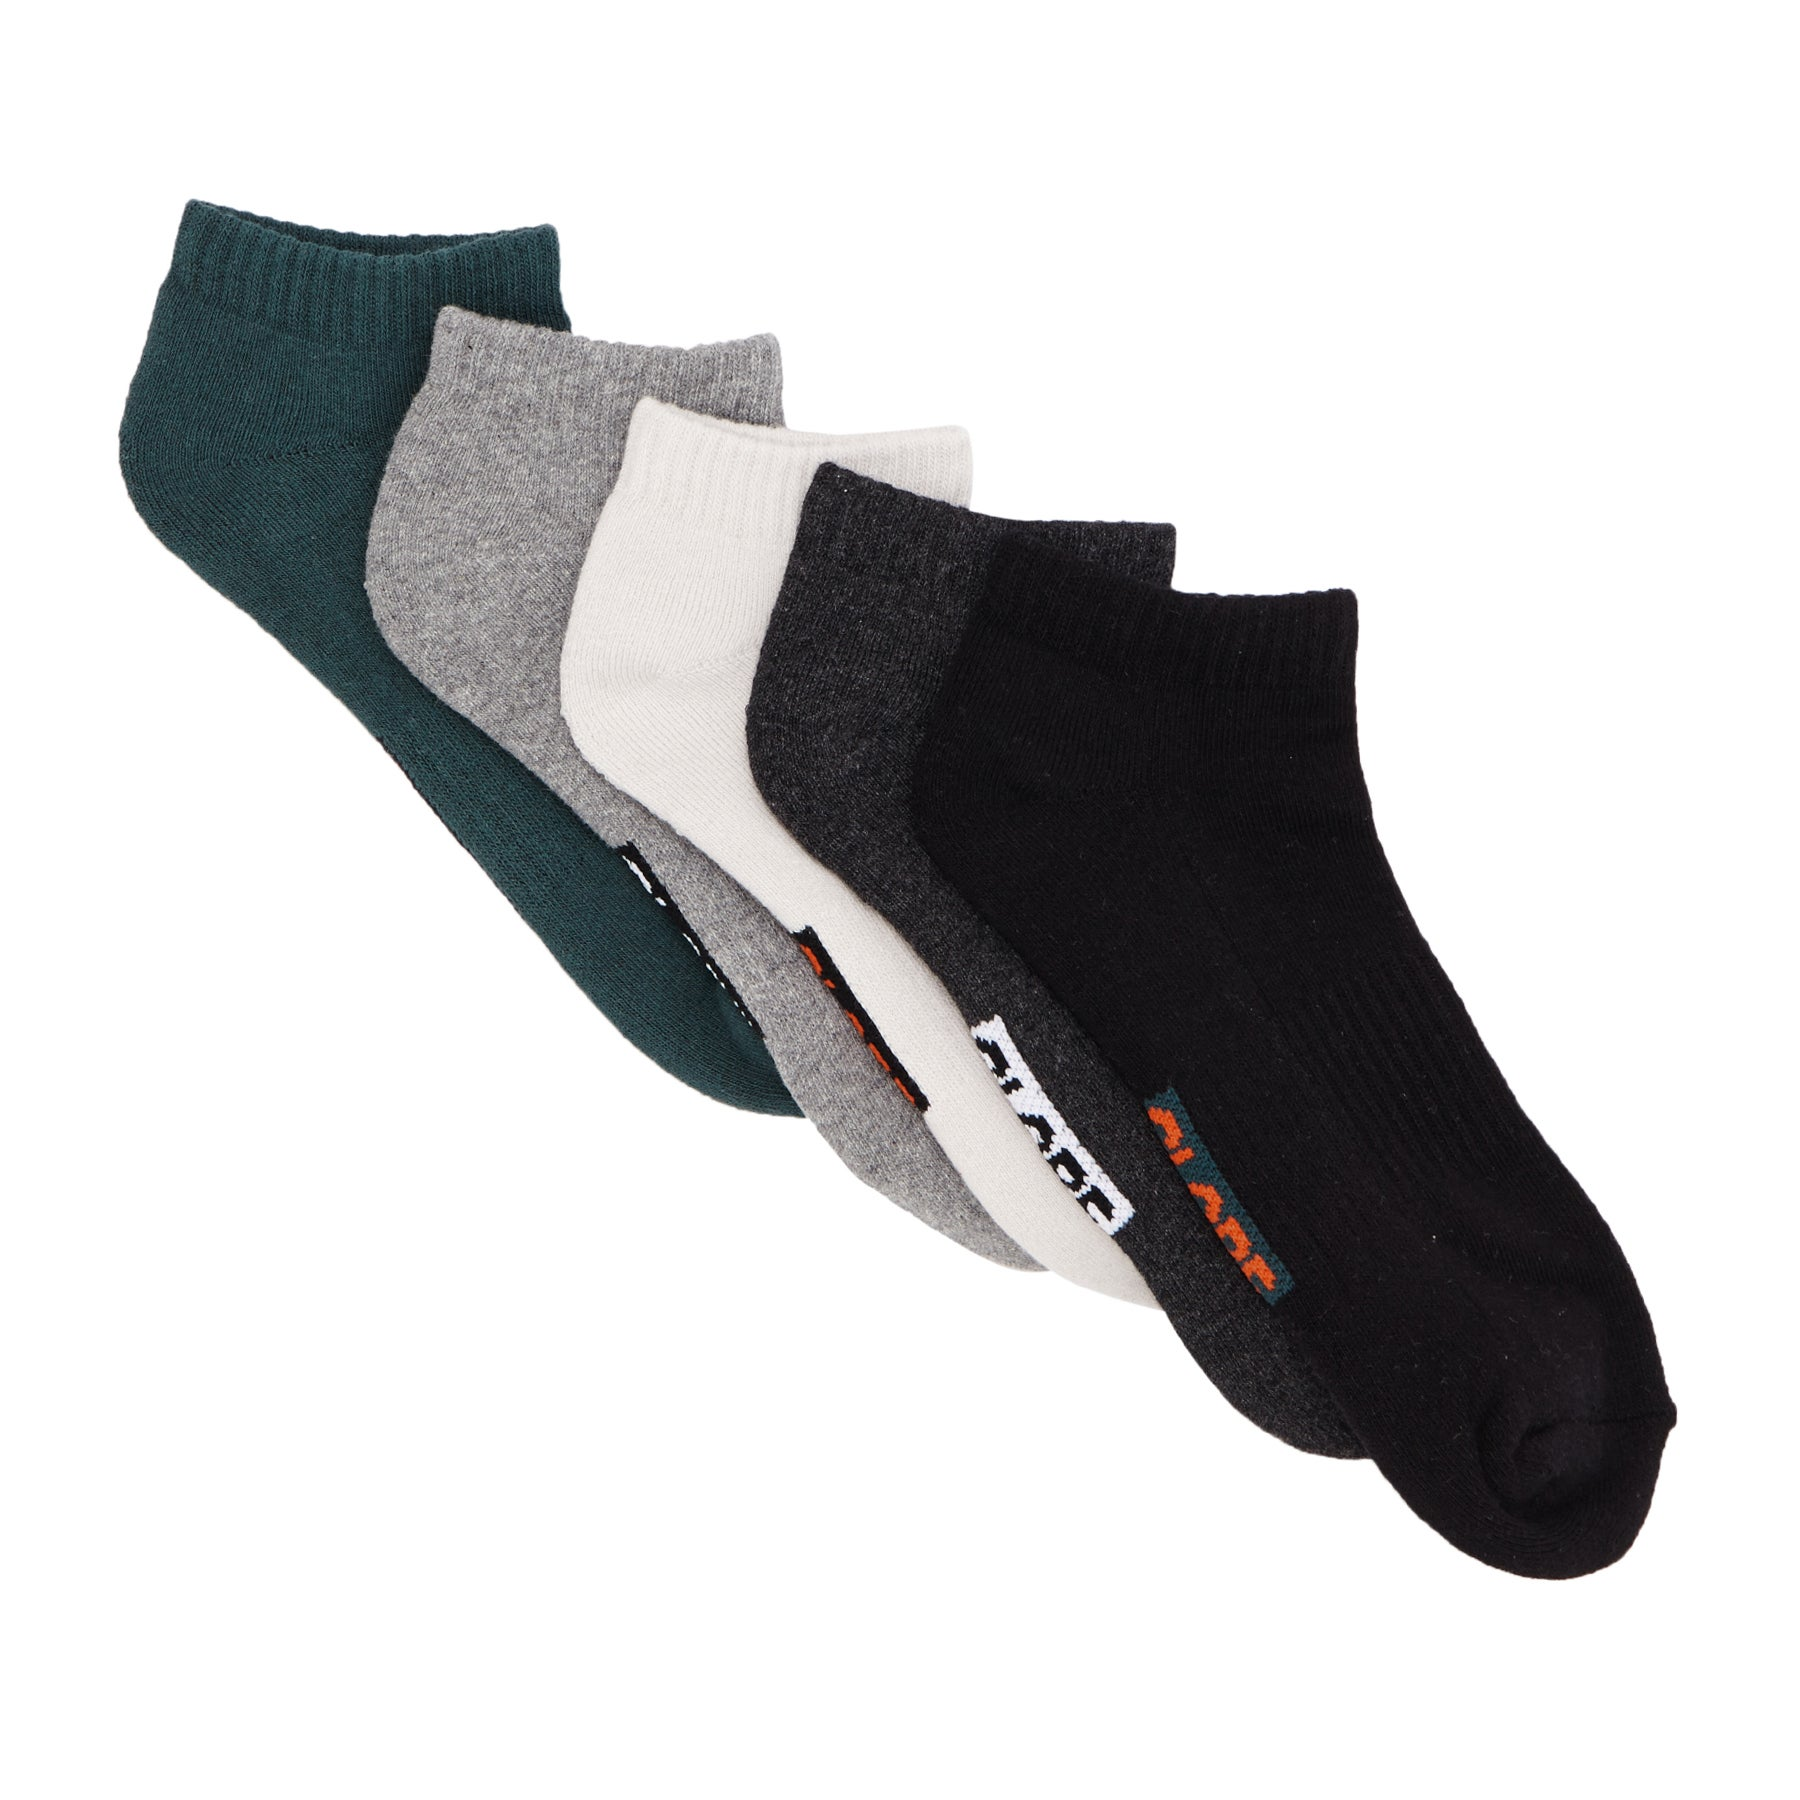 Meias Globe Hilite Ankle 5 Pack - Assorted